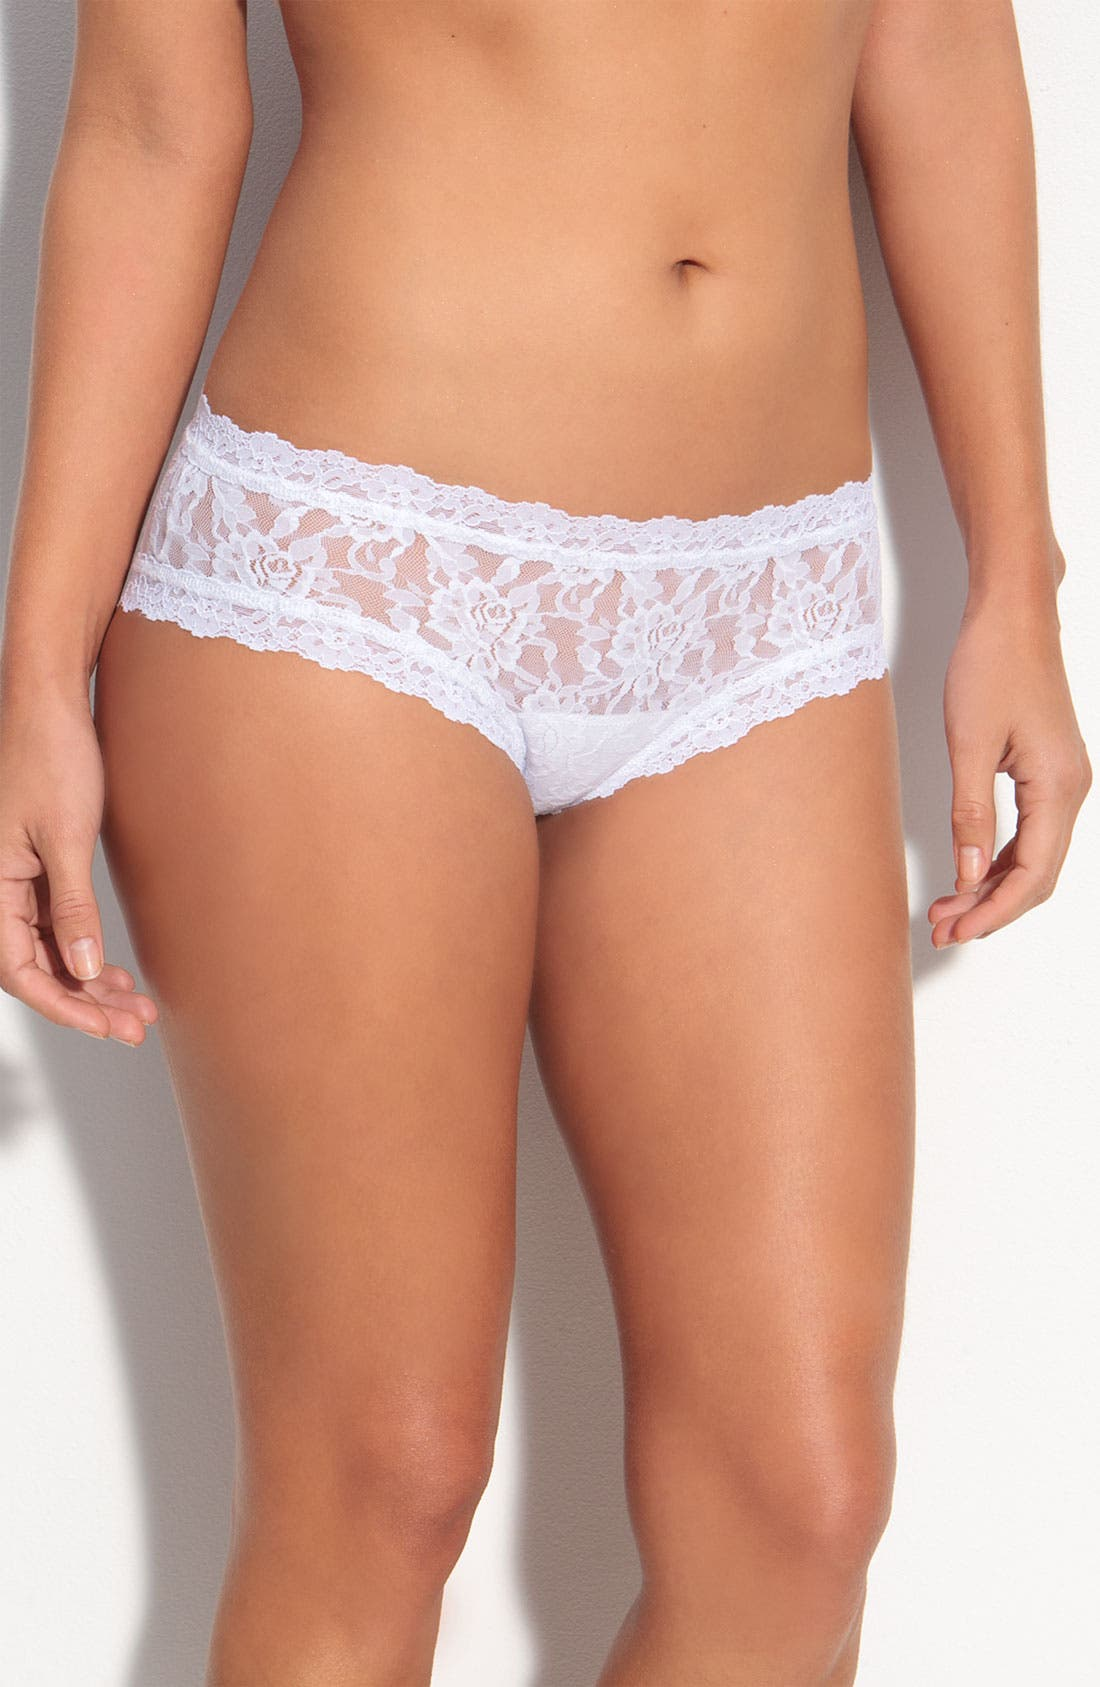 'Bride' Lace Hipster Panties,                             Alternate thumbnail 3, color,                             WHITE